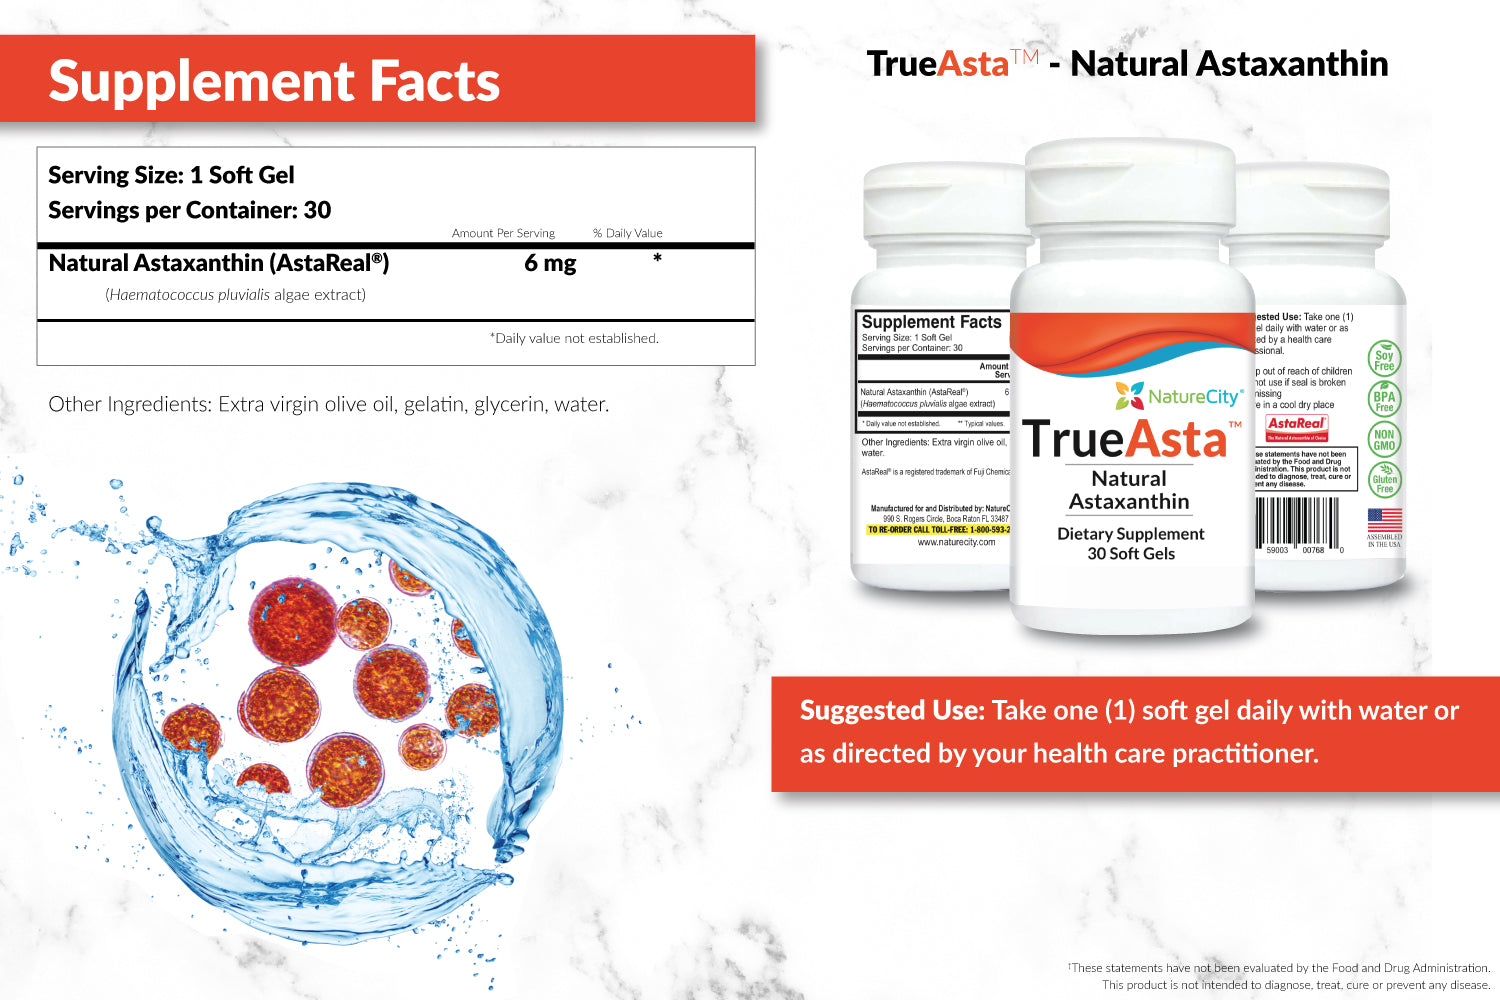 TrueAsta Astaxanthin Supplement Facts and Suggested Use